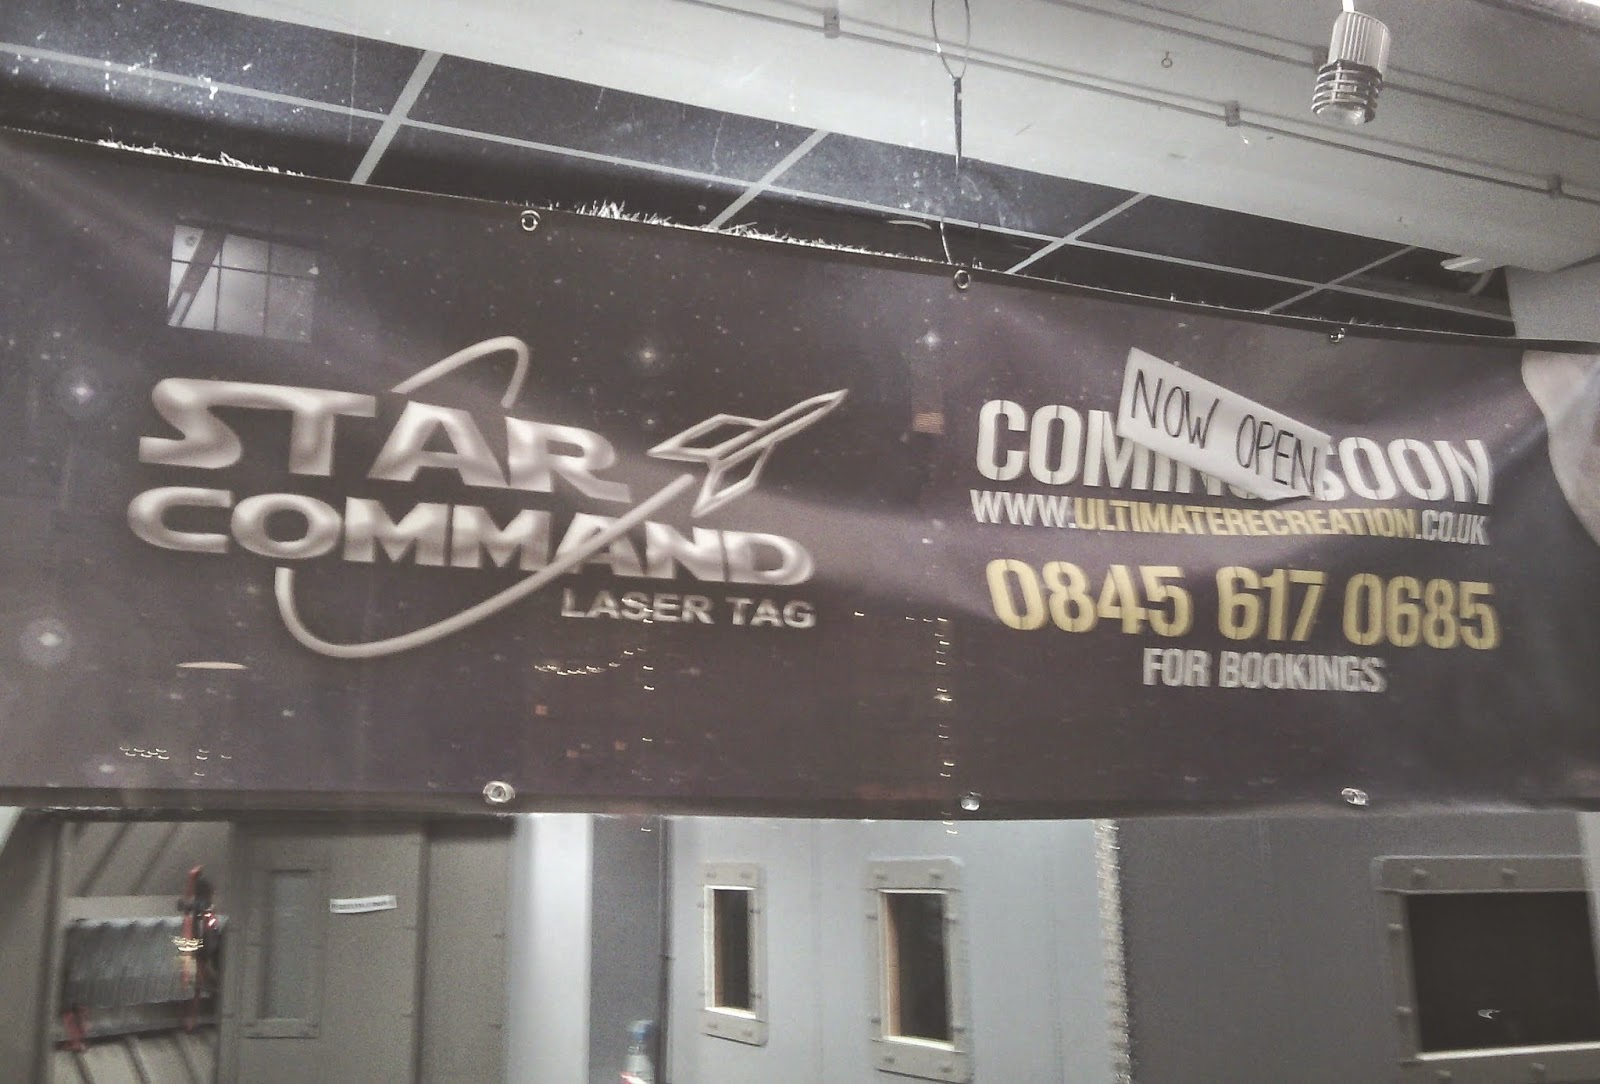 Star Command Laser Tag in London